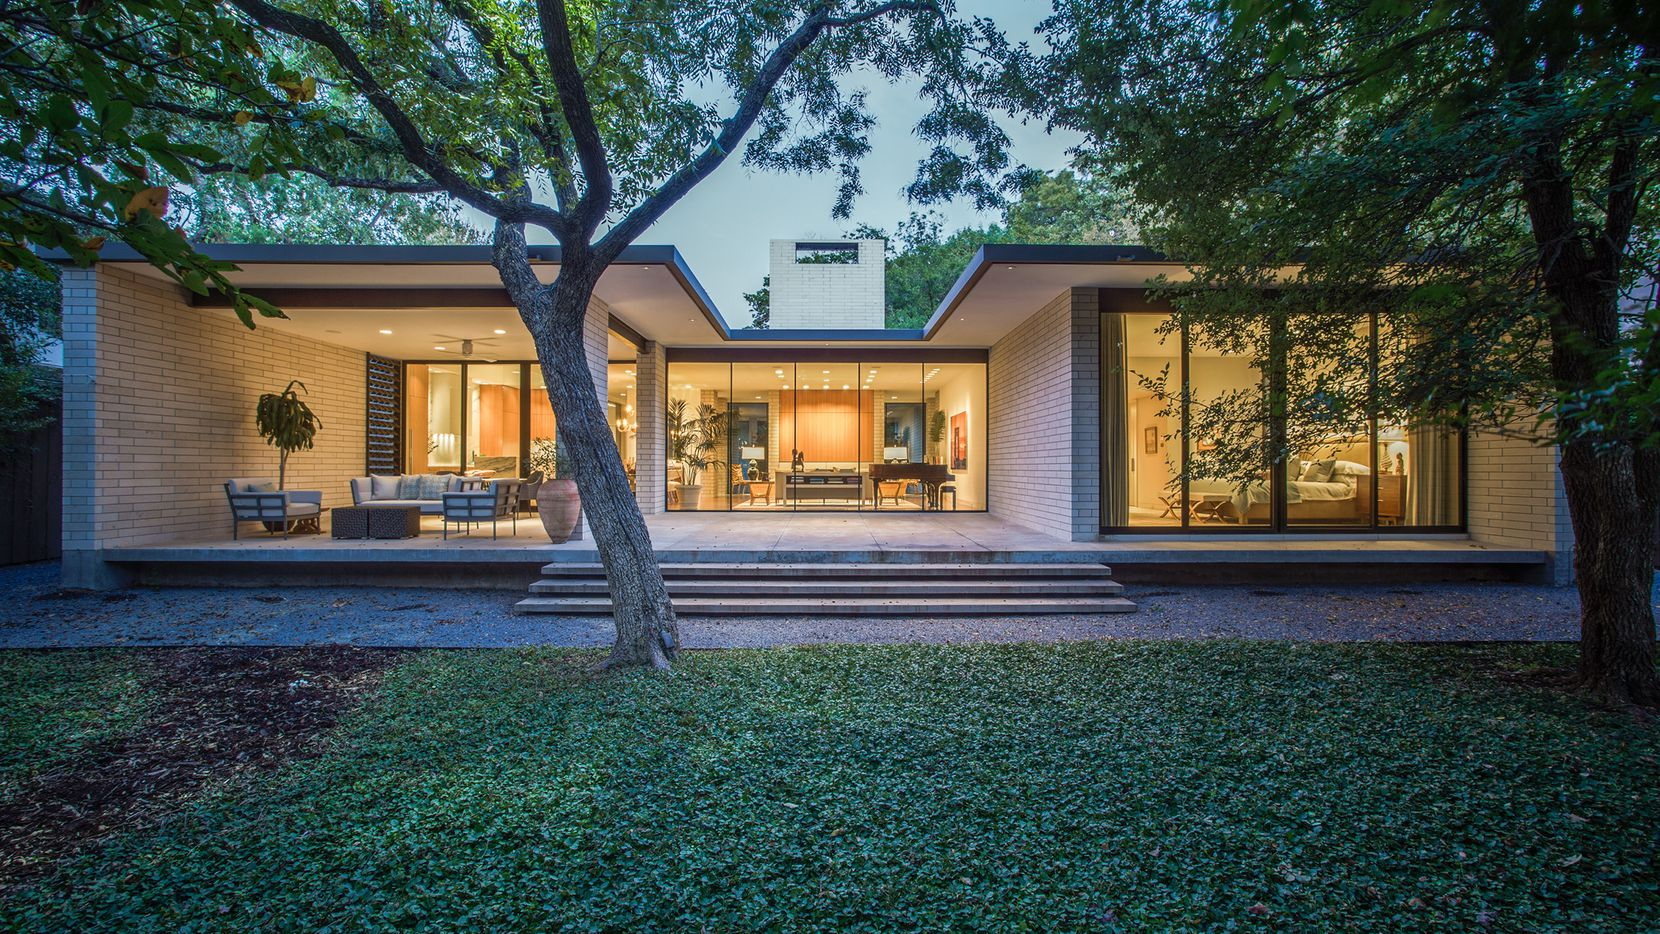 The three-bedroom custom contemporary design at 4603 Bluffview Blvd. is situated on a wooded half-acre.